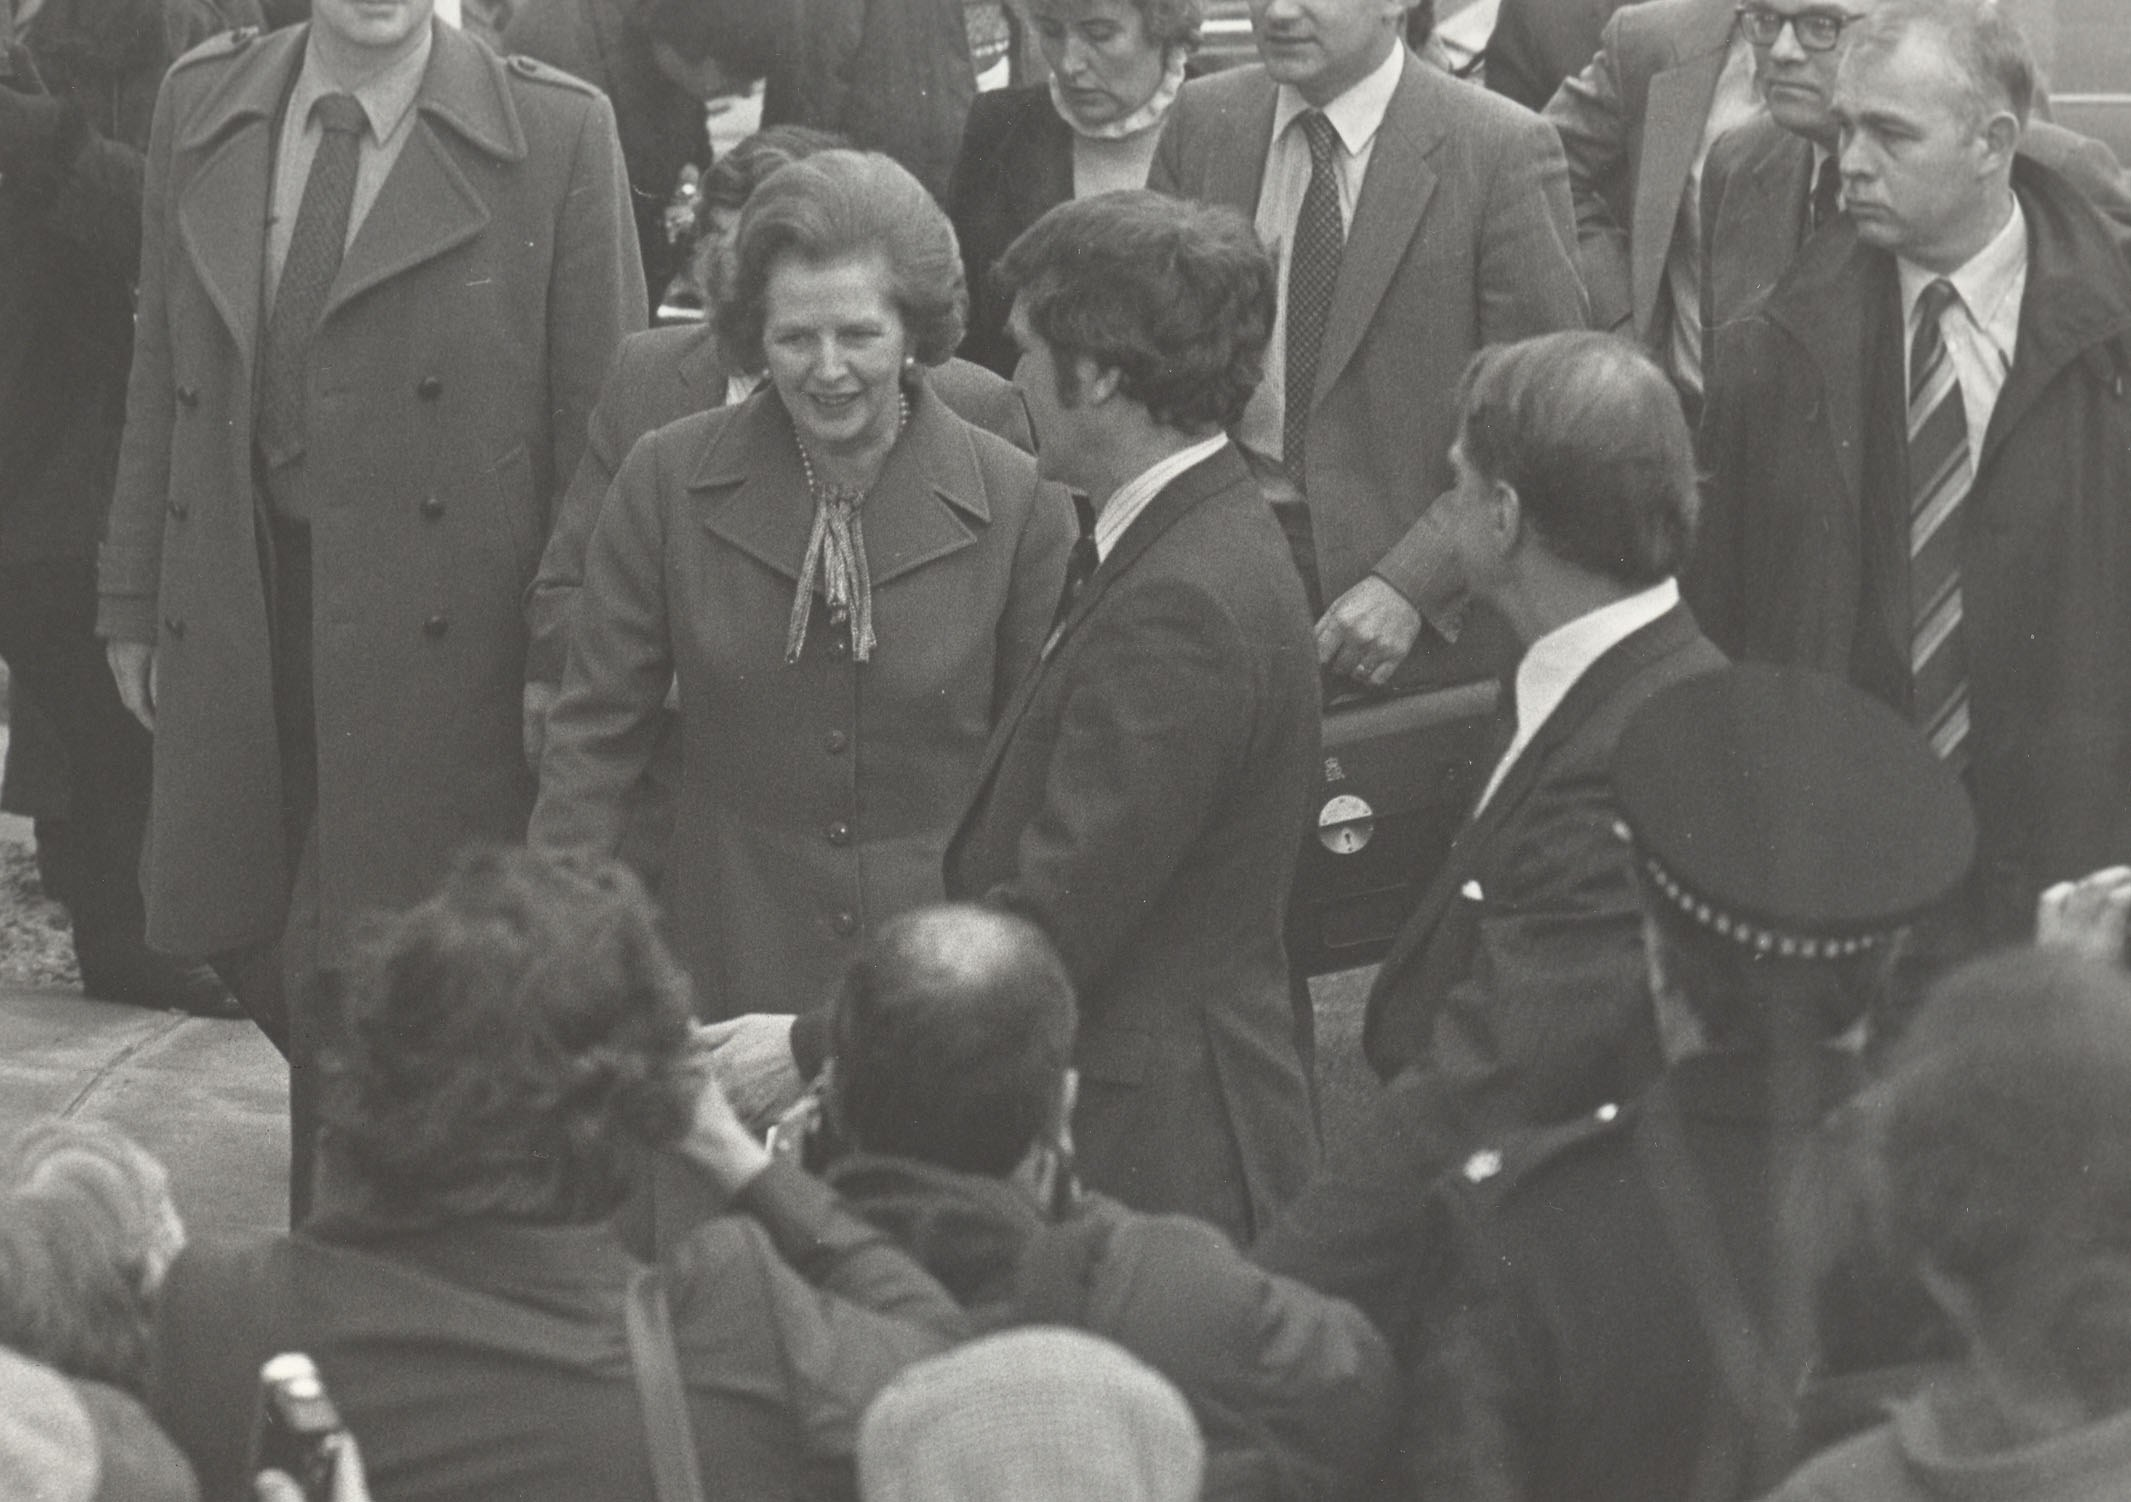 Margaret Thatcher visiting the University of Salford, 1982